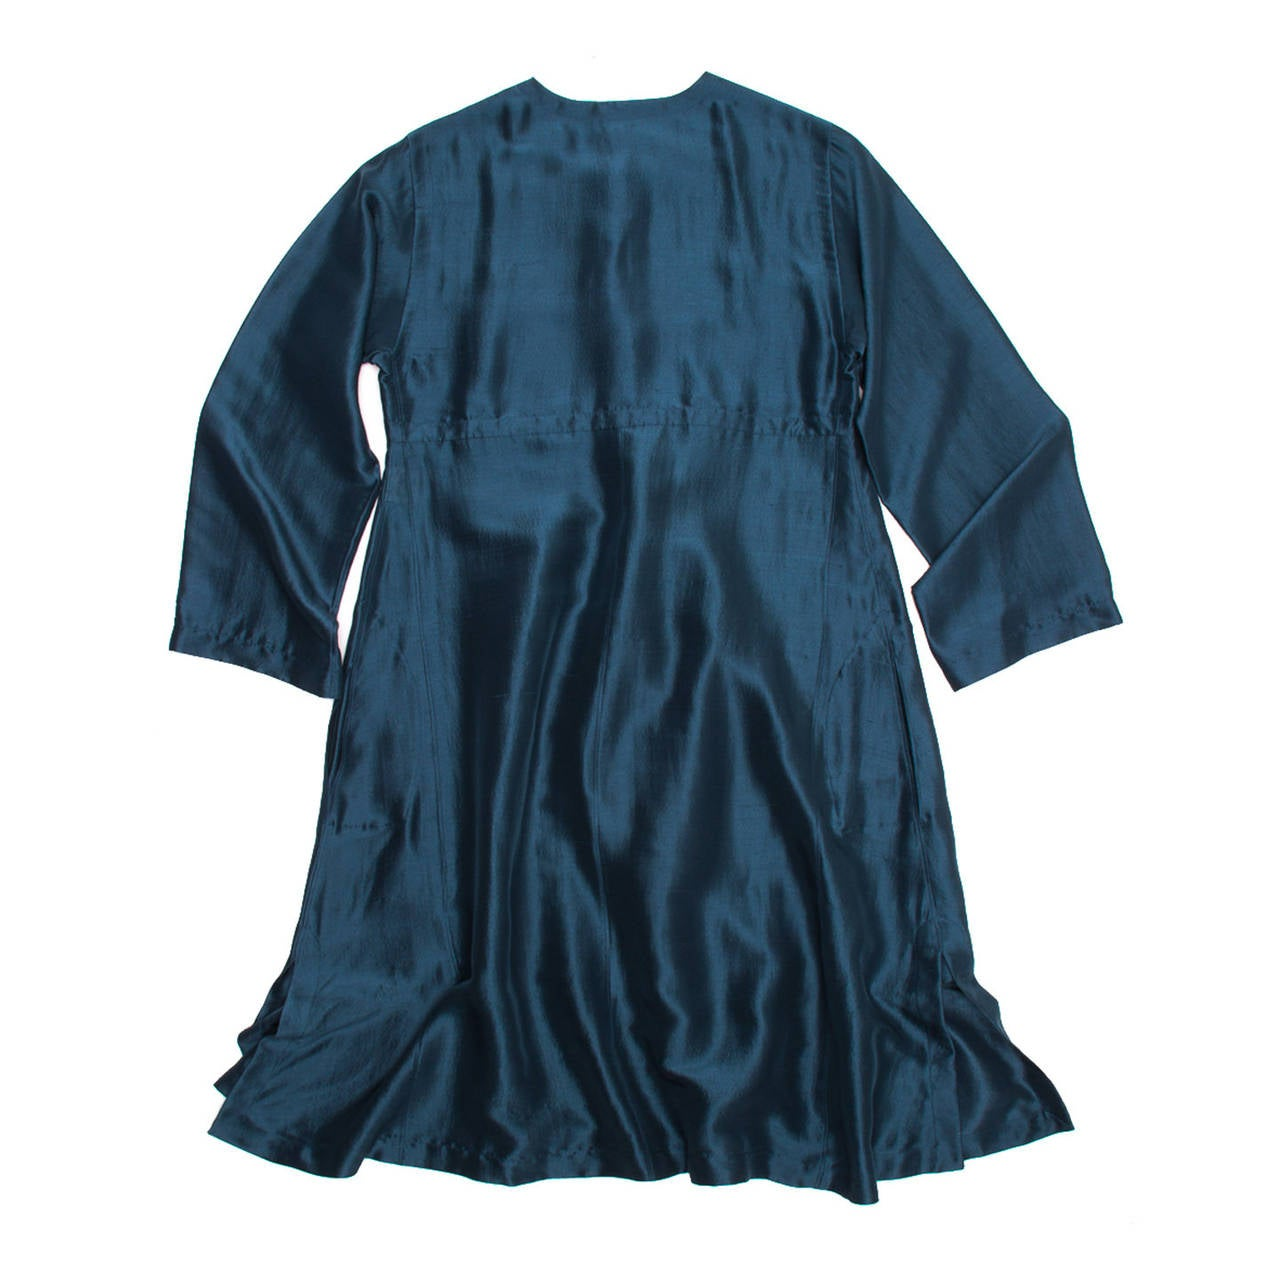 Hermes Silk Teal Tunic Dress In New Condition For Sale In Brooklyn, NY